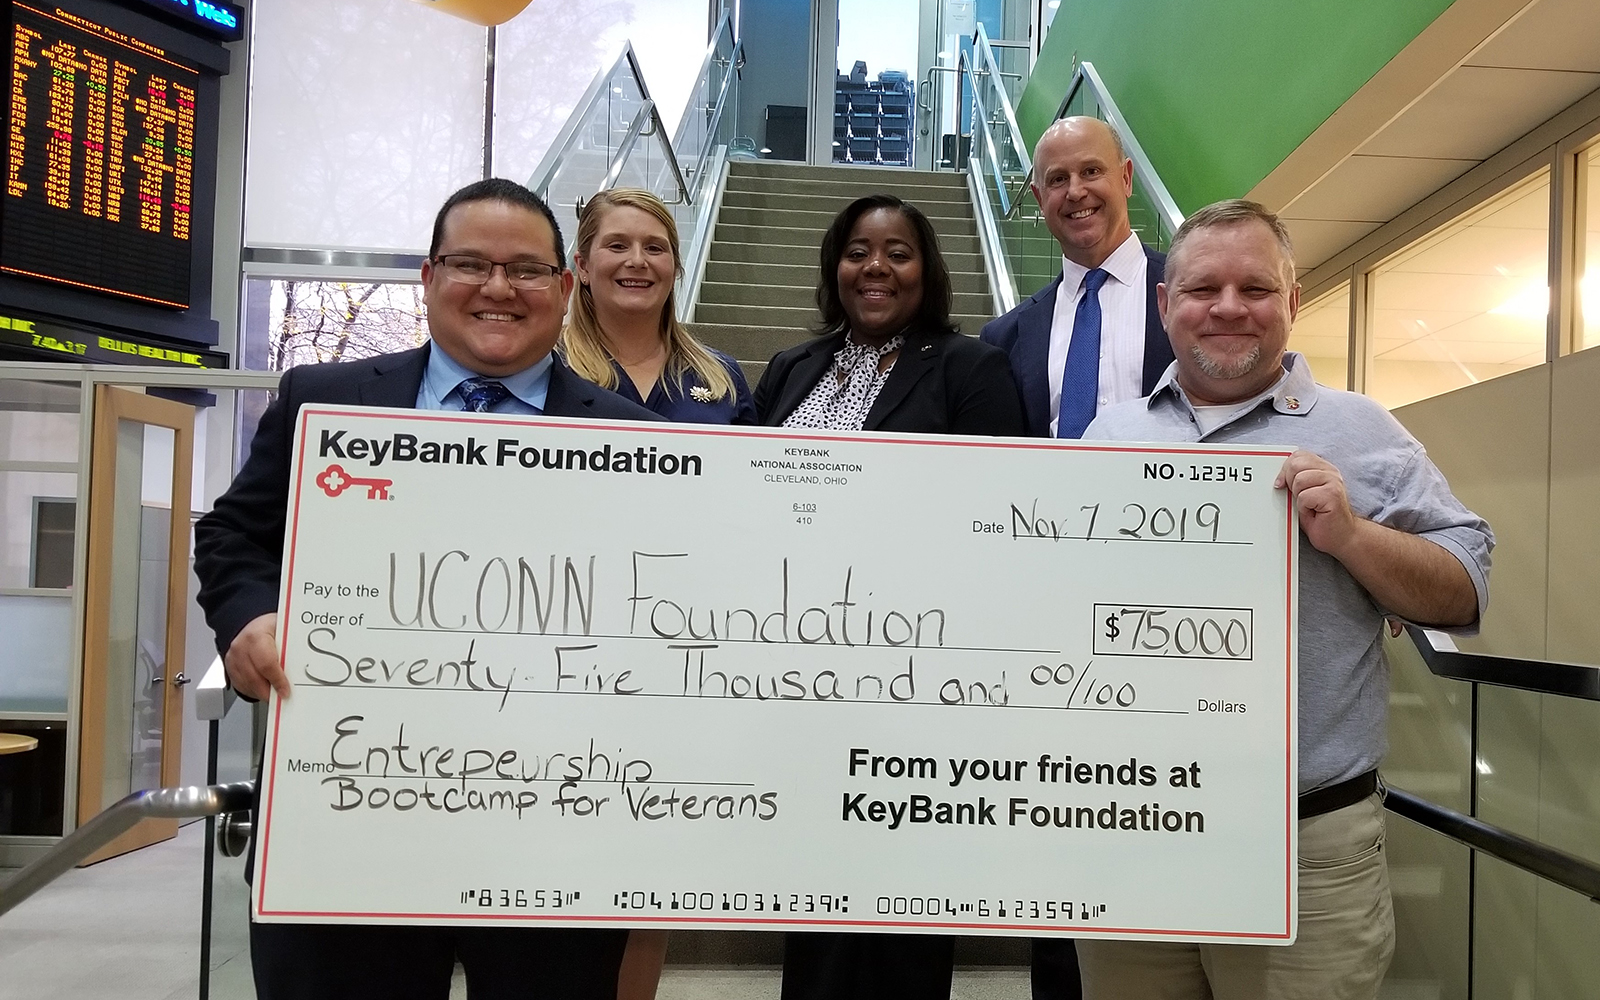 KeyBank has presented a $75,000 grant to the UConn School of Business' Entrepreneurship Bootcamp for Veterans, which helps U.S. military veterans become small business owners. Pictured from left to right are UConn EBV program graduates Jorge and Jessica Rodriguez, KeyBank Corporate Responsibility Officer LaKisha Jordan, KeyBank Market President Jim Barger, and UConn EBV Director Michael Zacchea. (Contributed Photo)